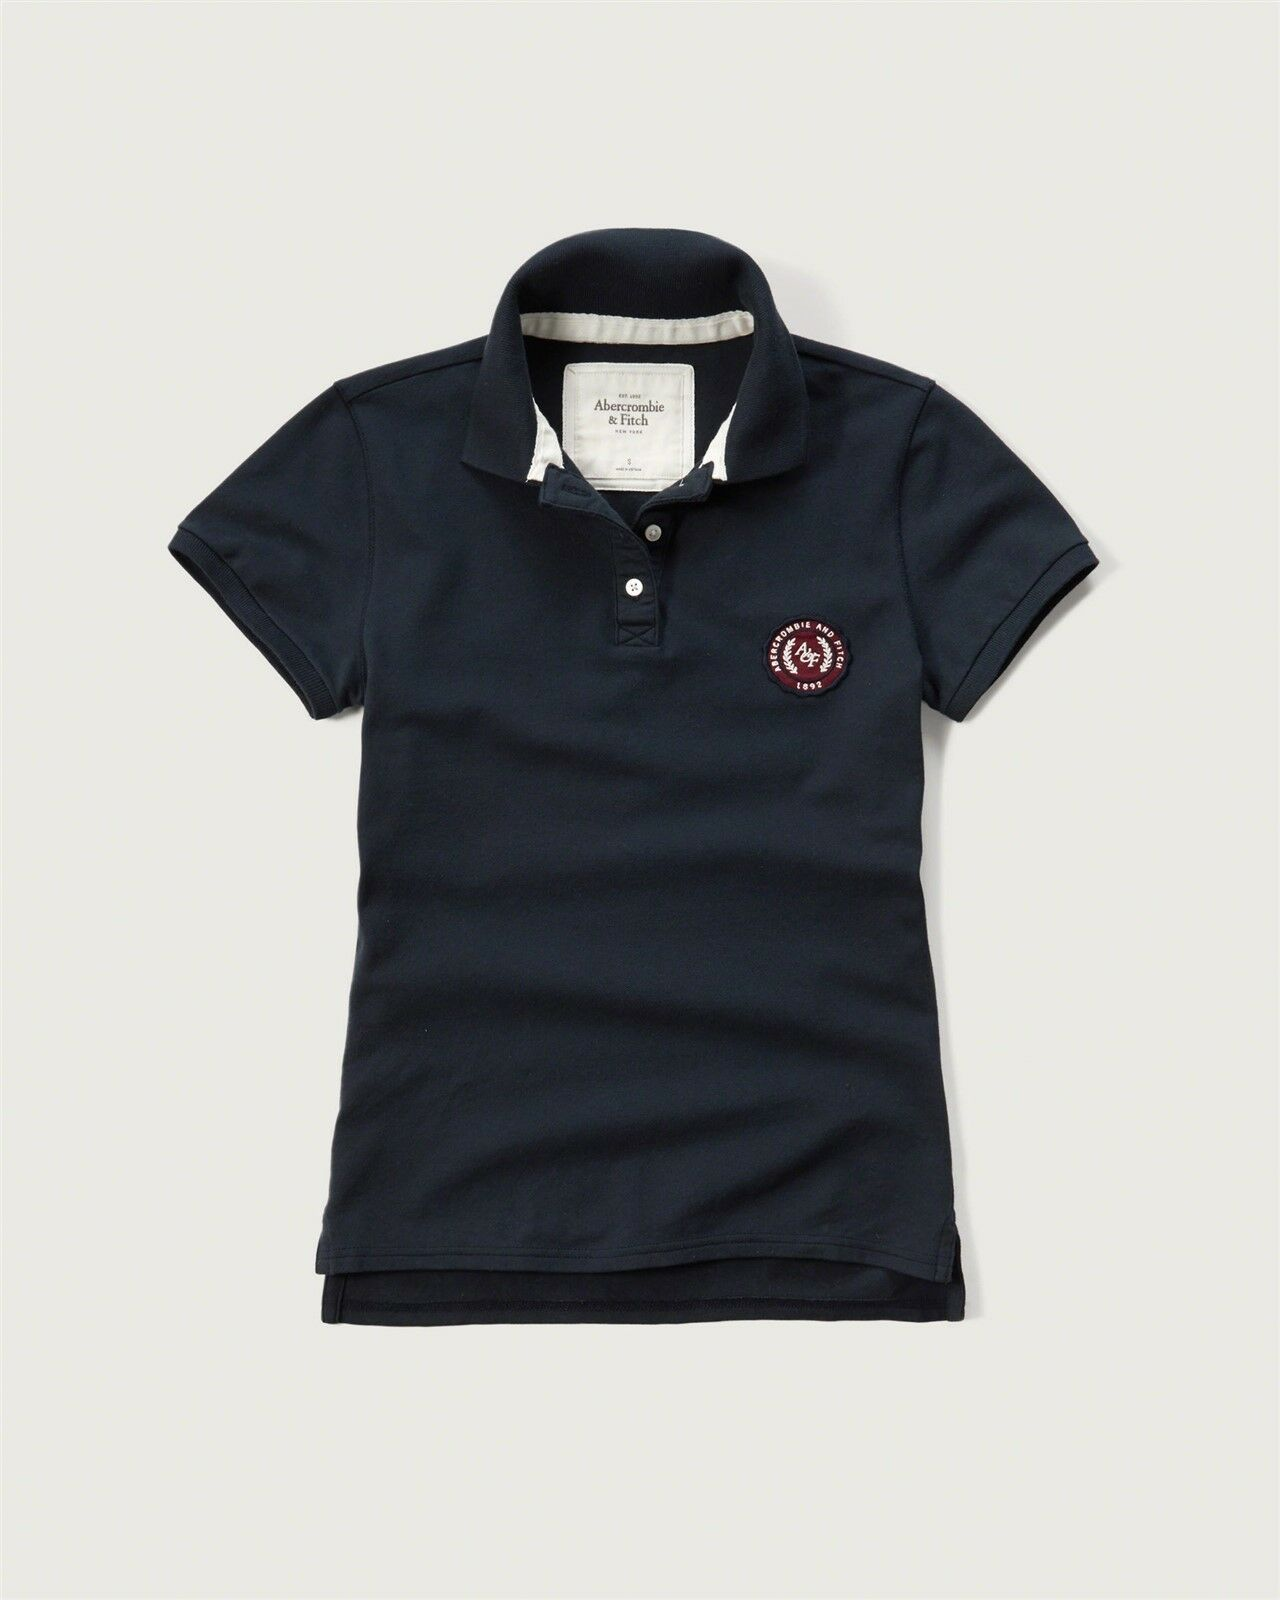 c0adc336fa0 NEW Abercrombie   Fitch Logo Classic Polo Shirt S Small Navy